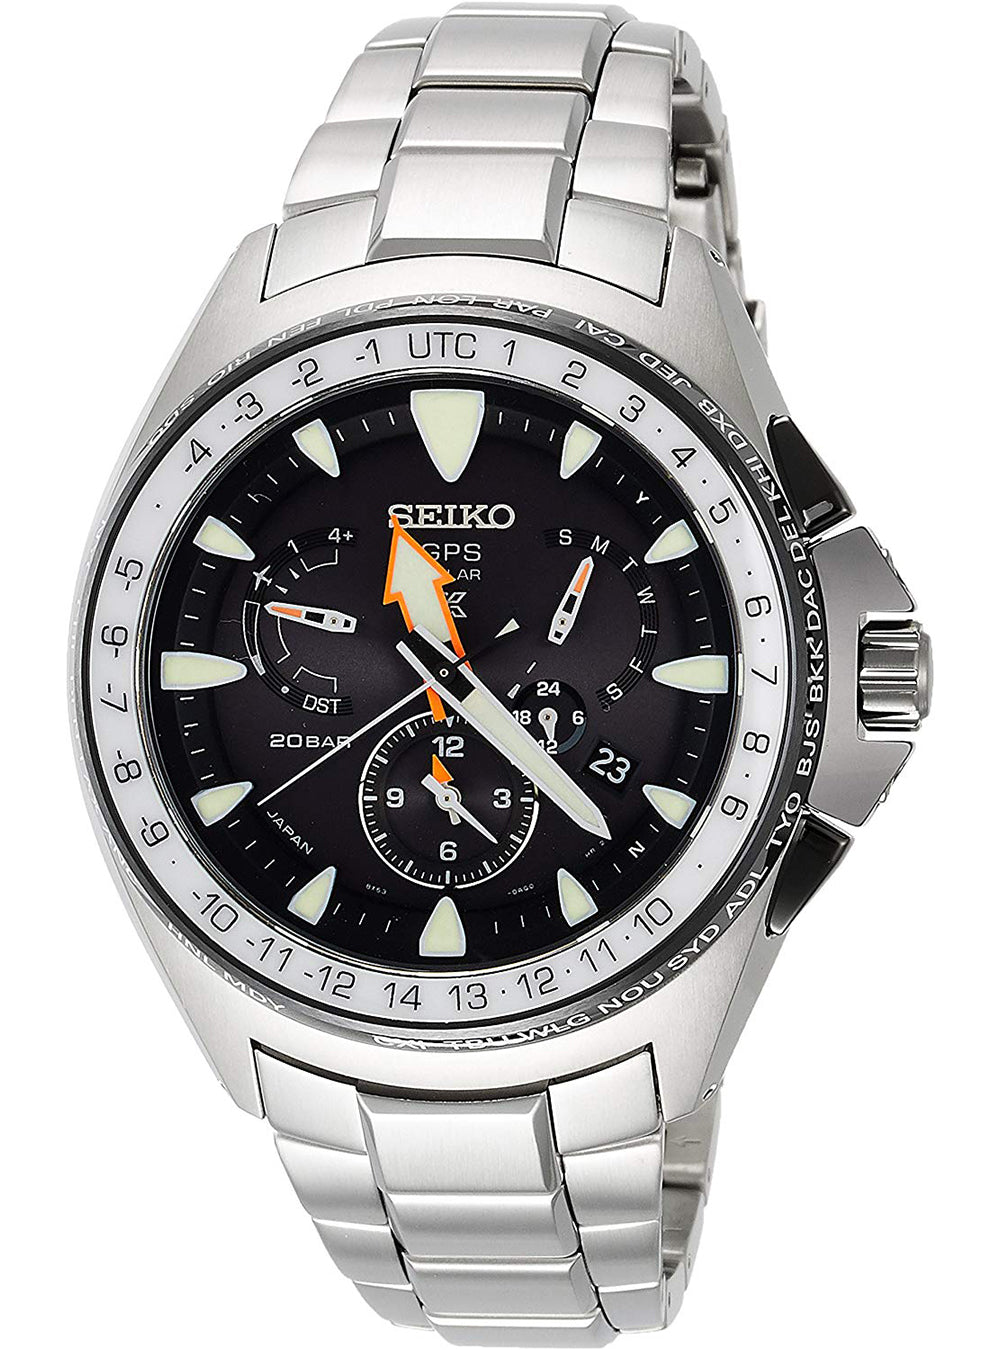 SEIKO PROSPEX Marinemaster Ocean Cruiser SBED003 LIMITED EDITION MADE IN JAPAN JDM